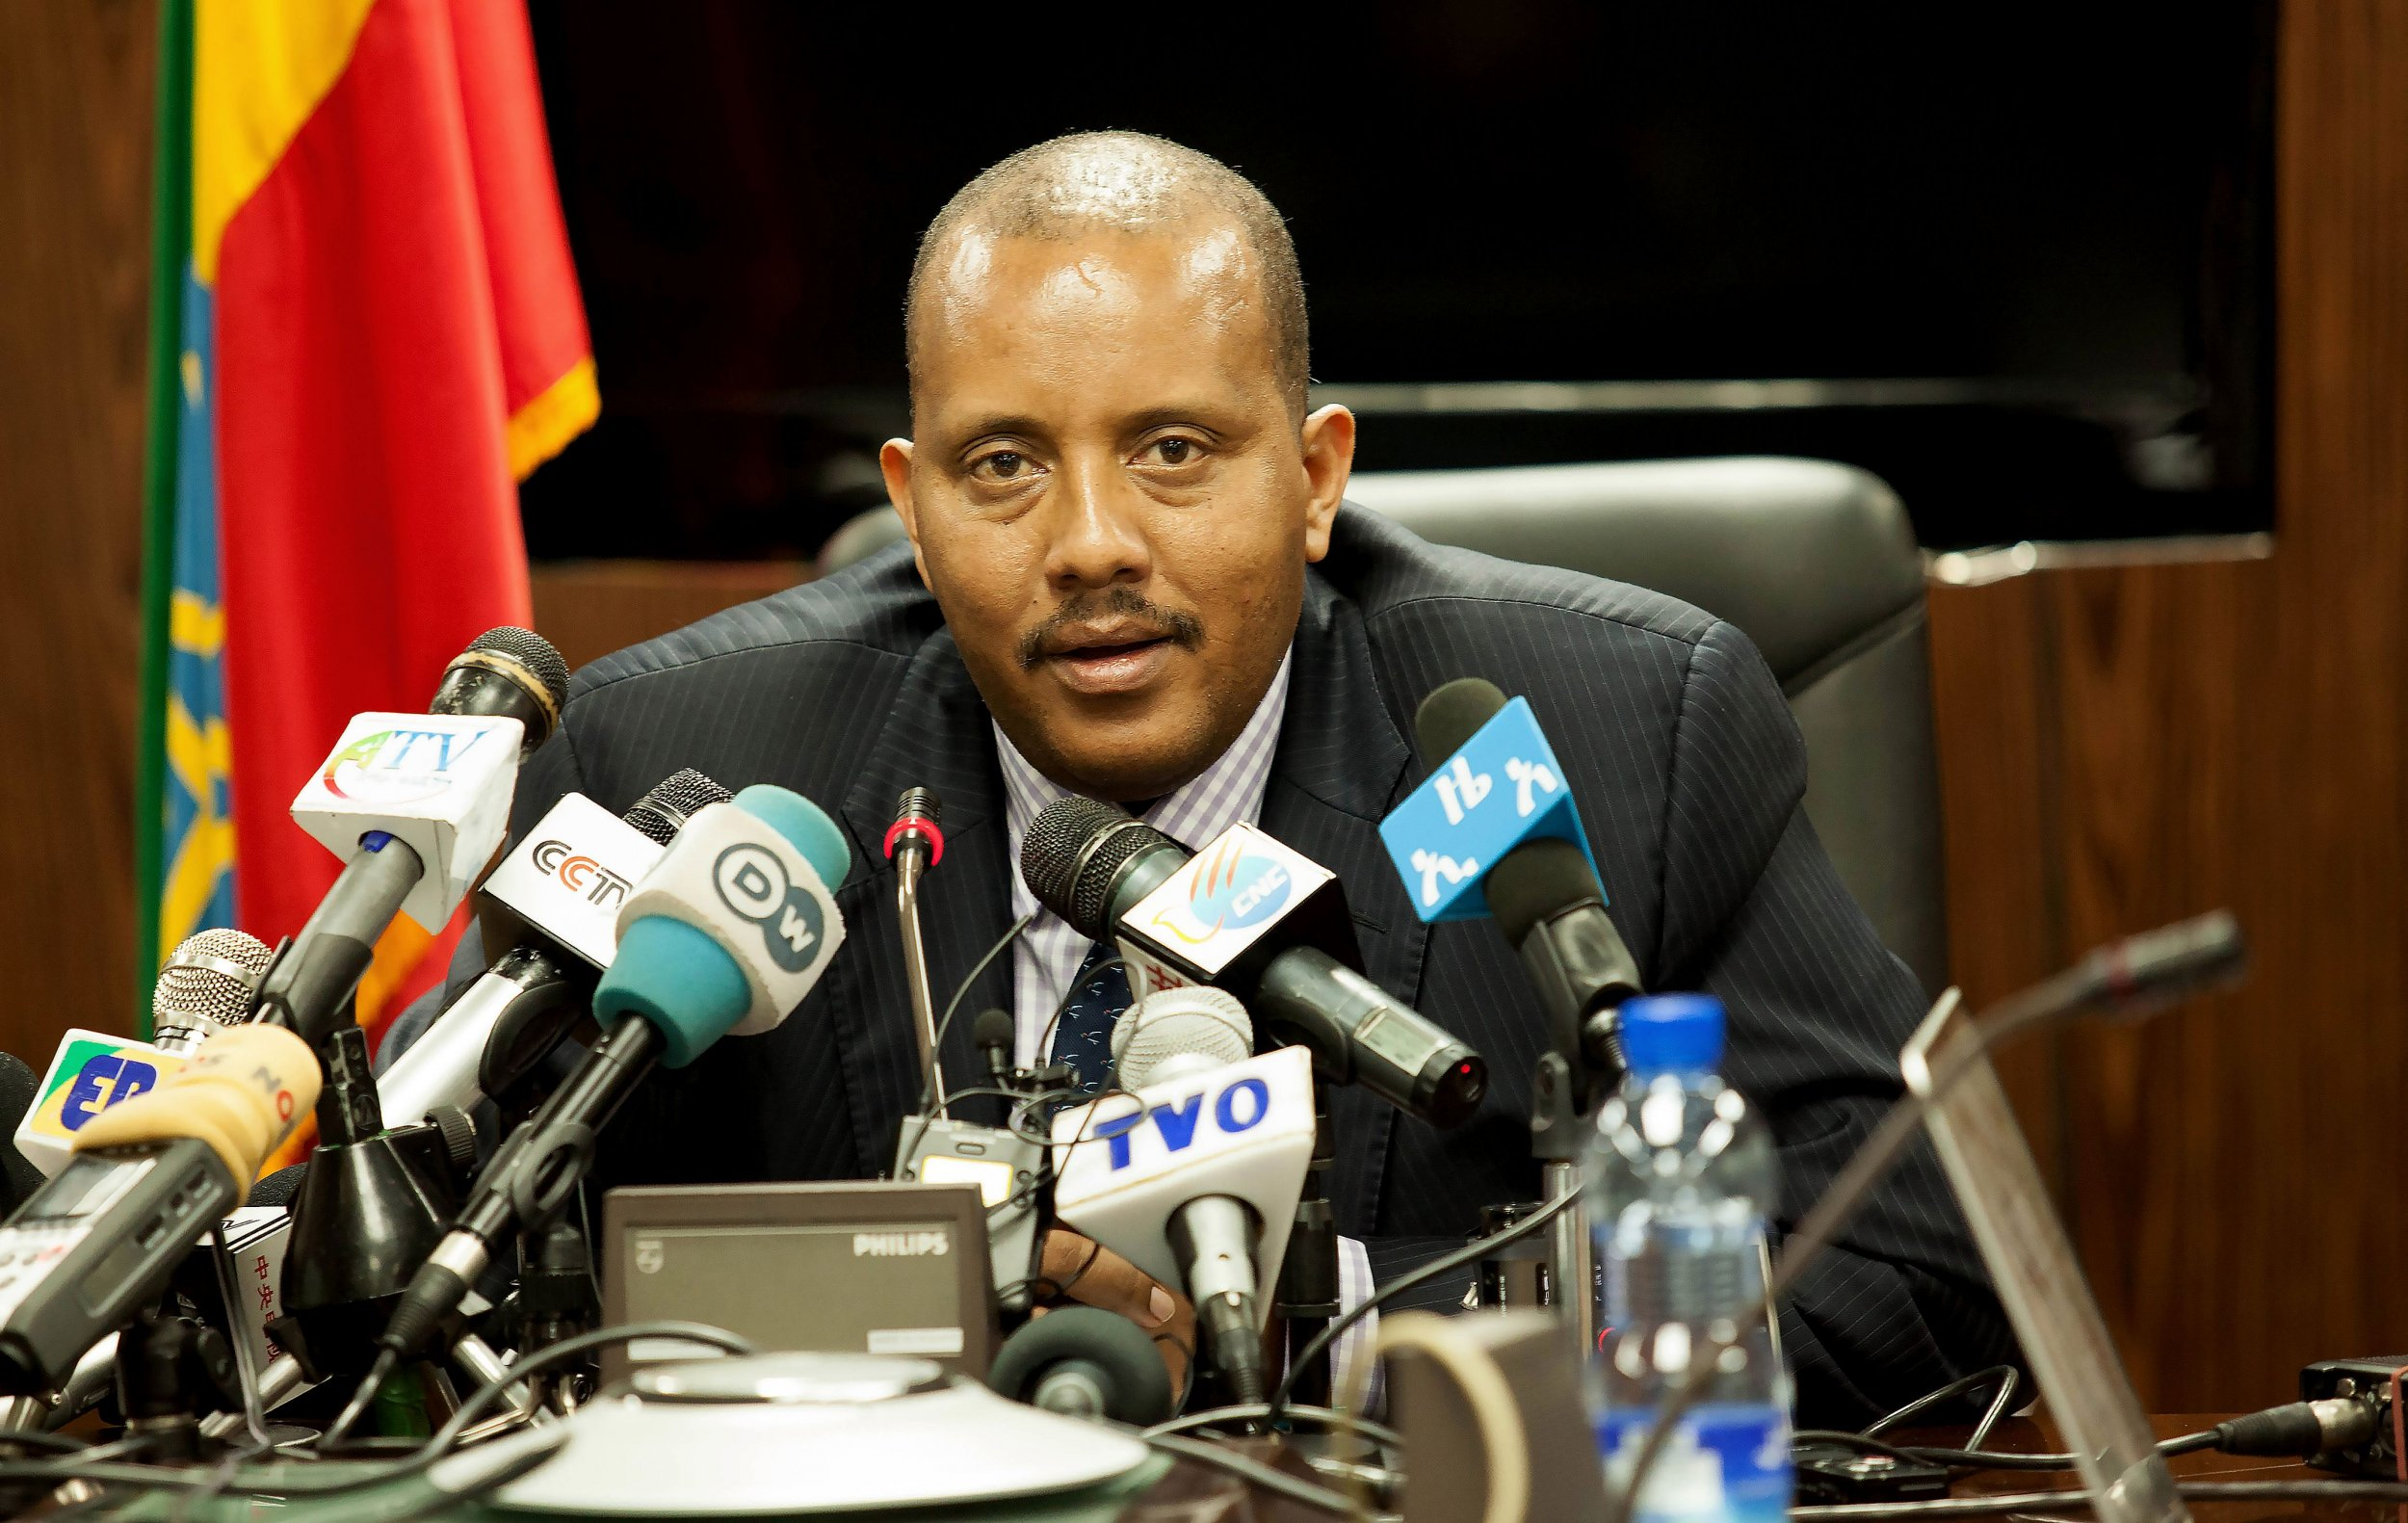 Ethiopian communications minister Getachew Reda